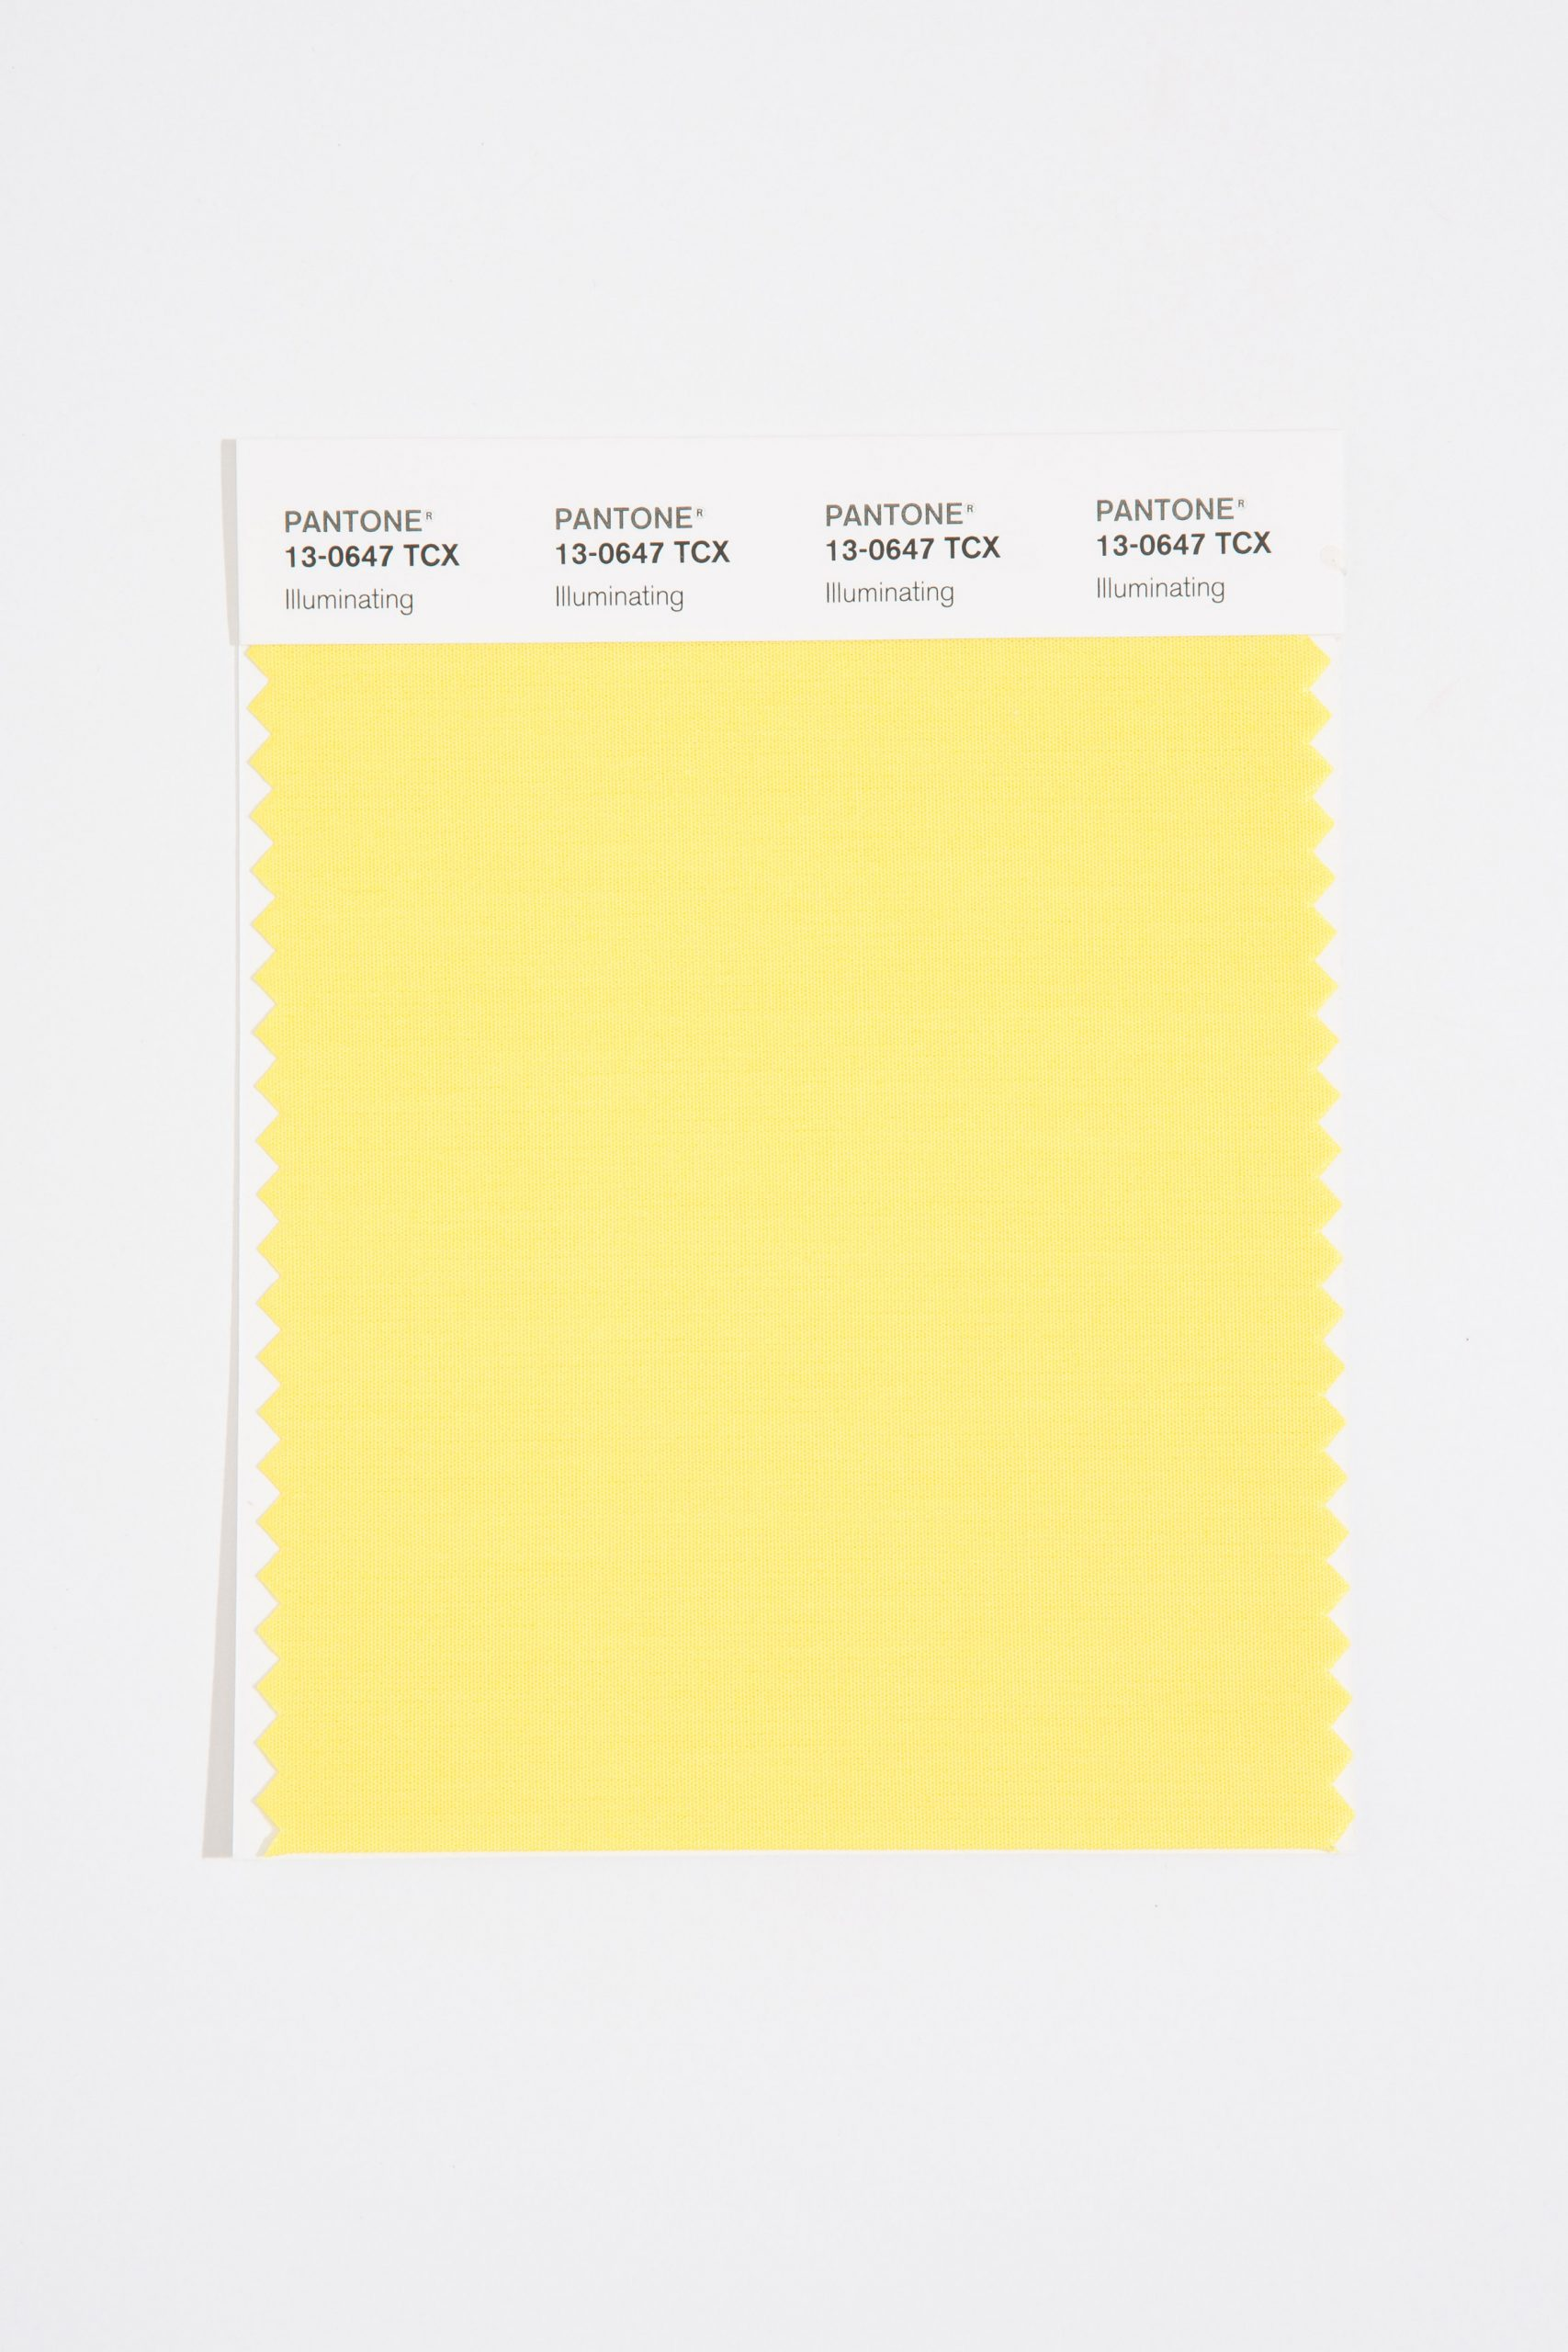 Illuminating is one of Pantone's colours of the year for 2021